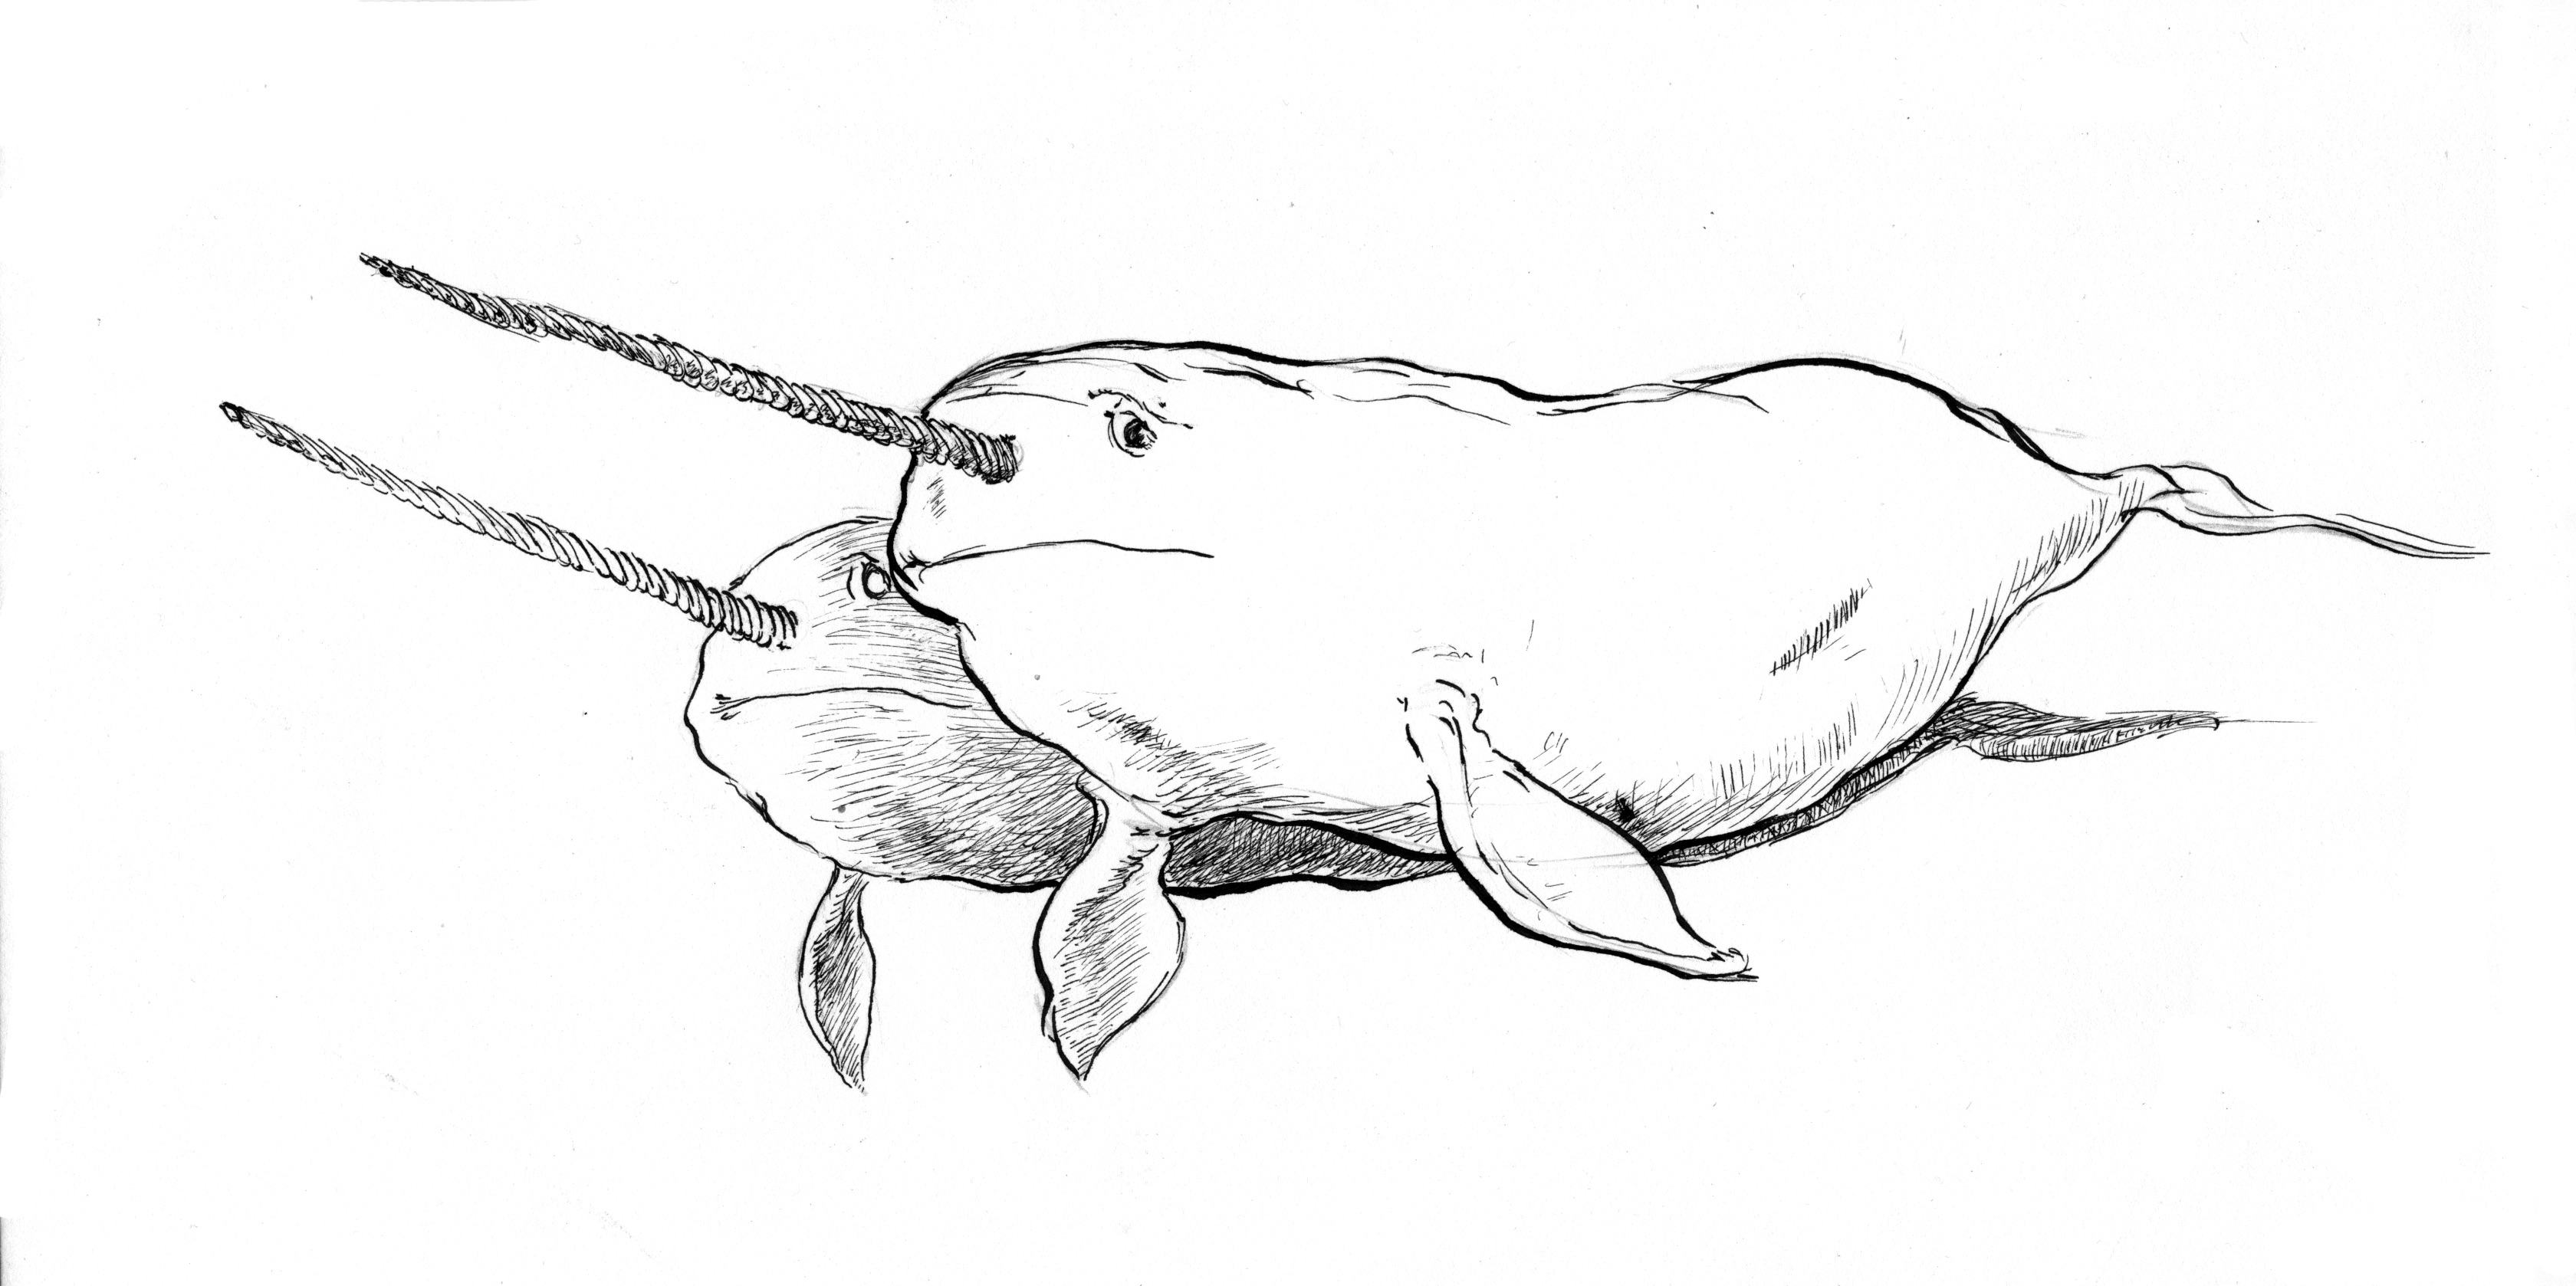 Image of a Joust of Narwhals